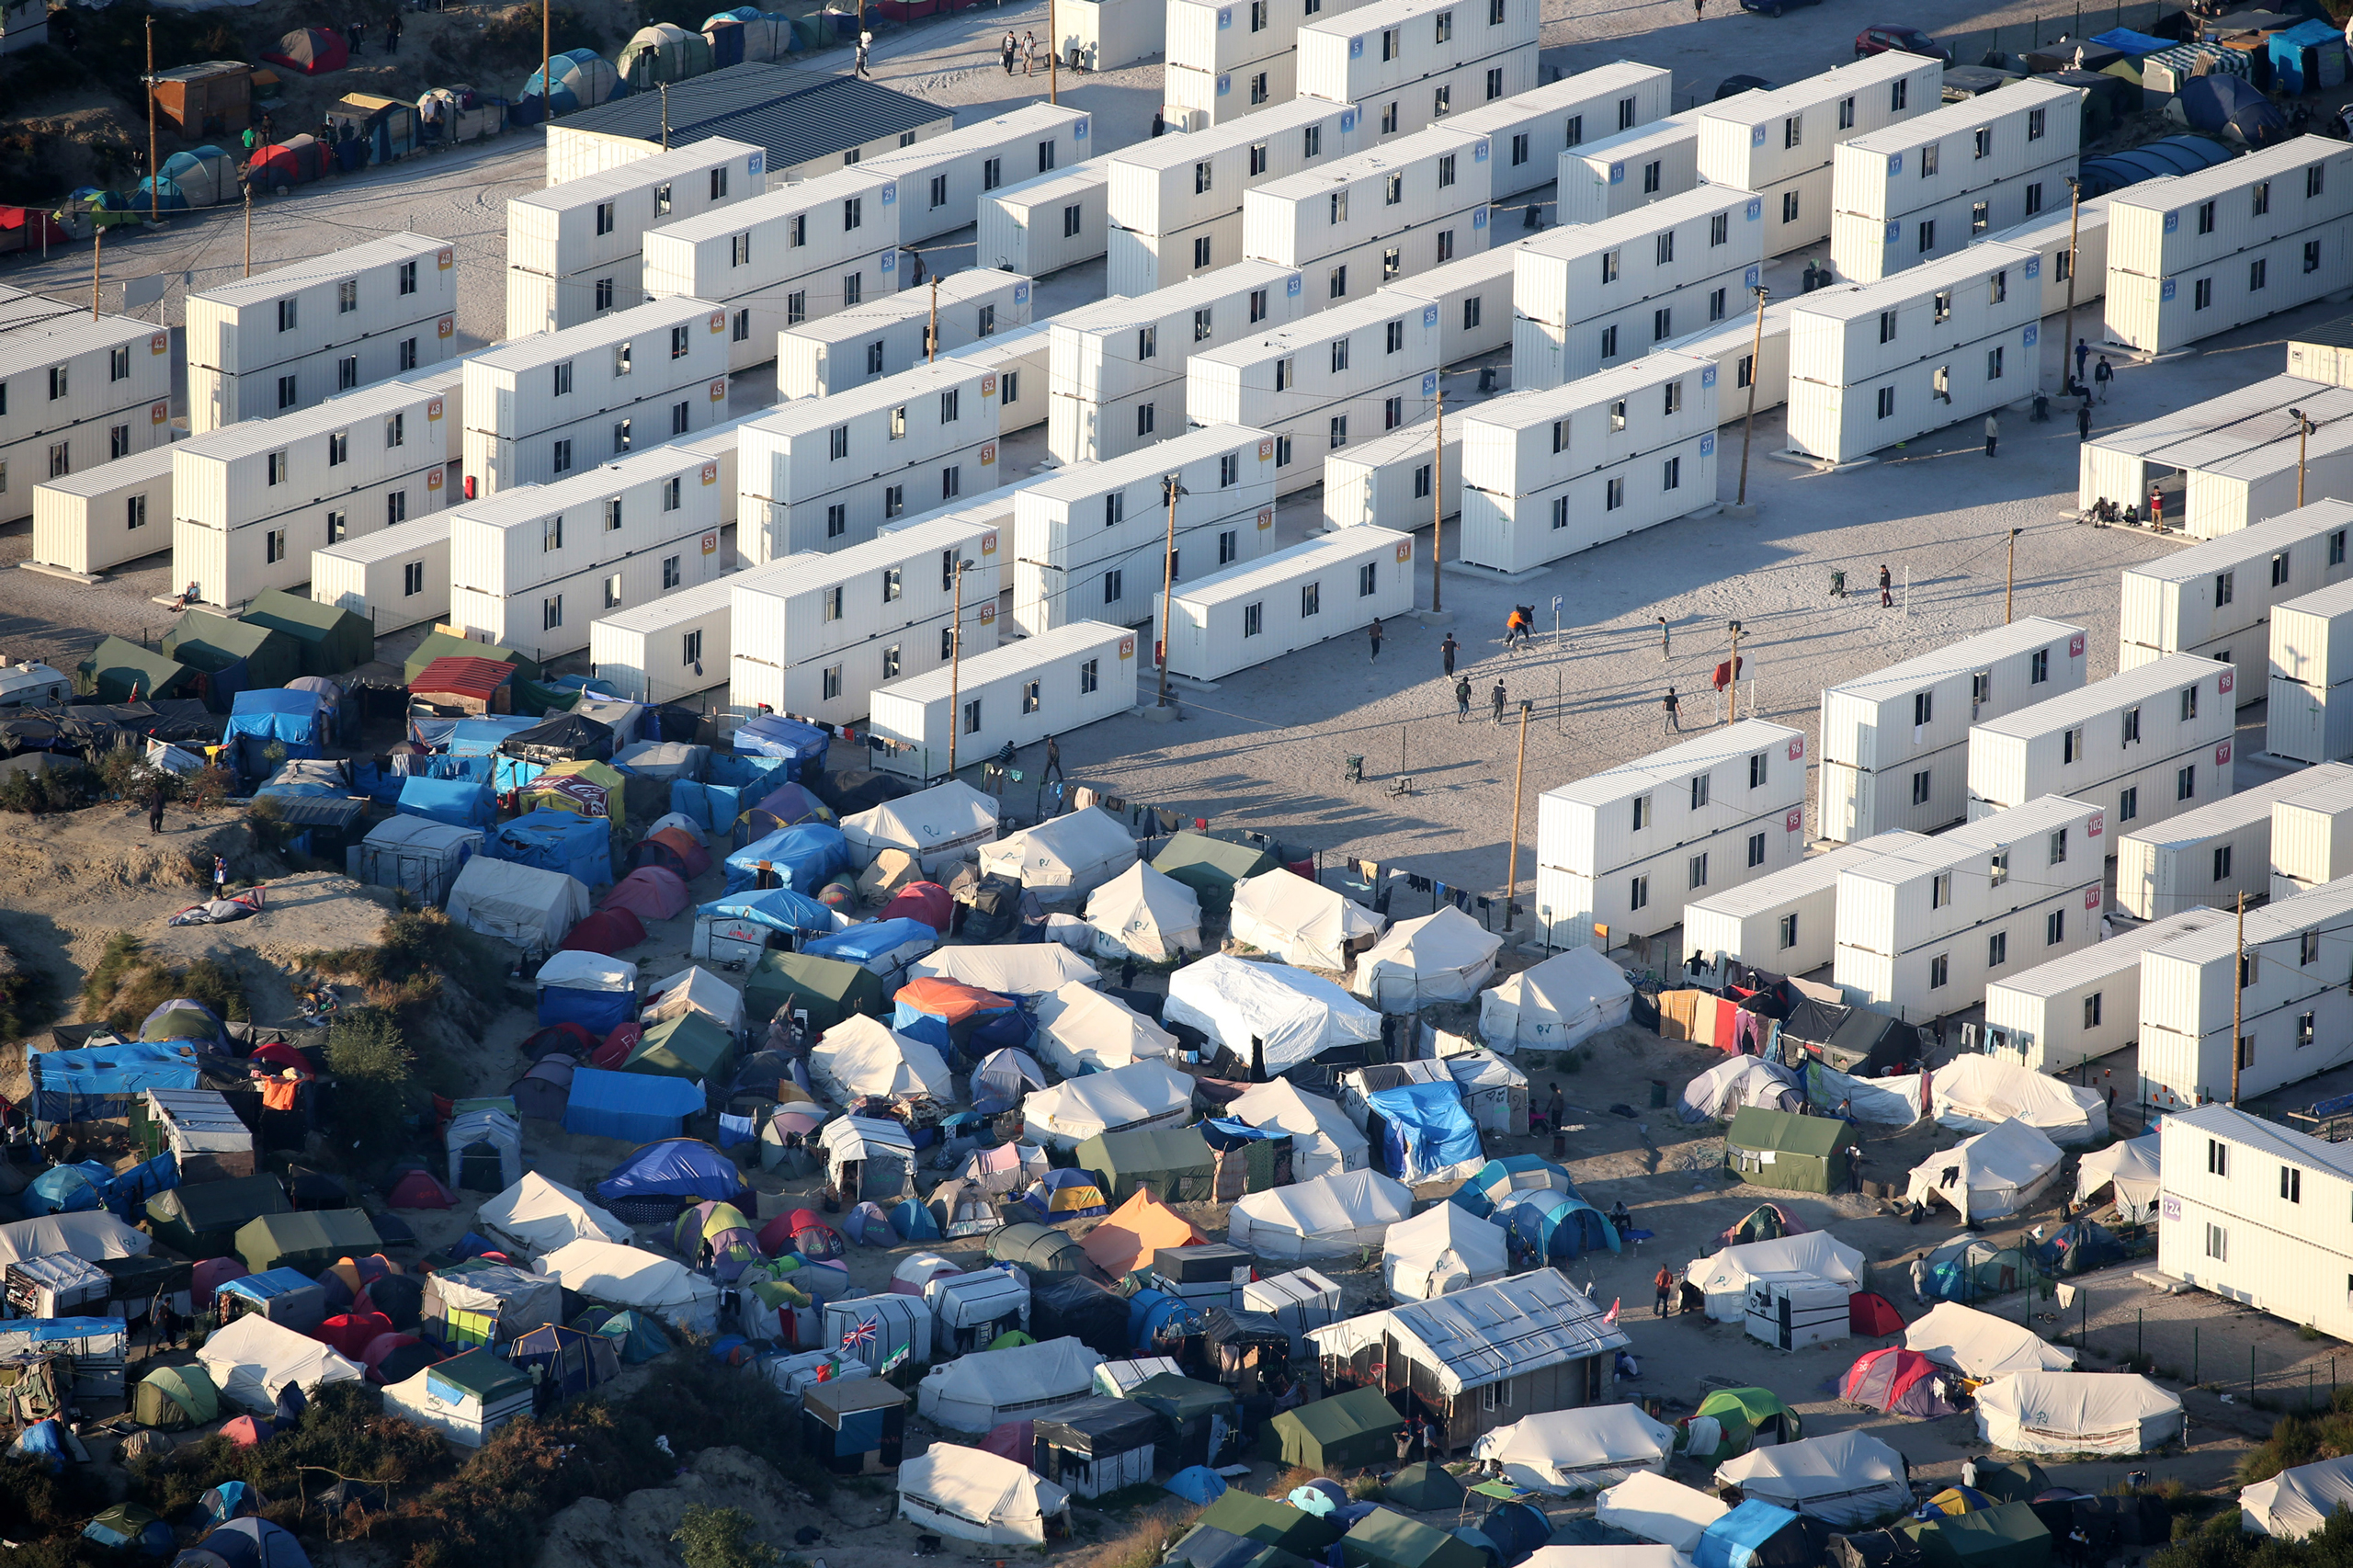 An aerial view shows makeshift shelters, tents and containers where migrants live in what is known as the  Jungle , a sprawling camp in Calais, France, on Sept. 7, 2016.